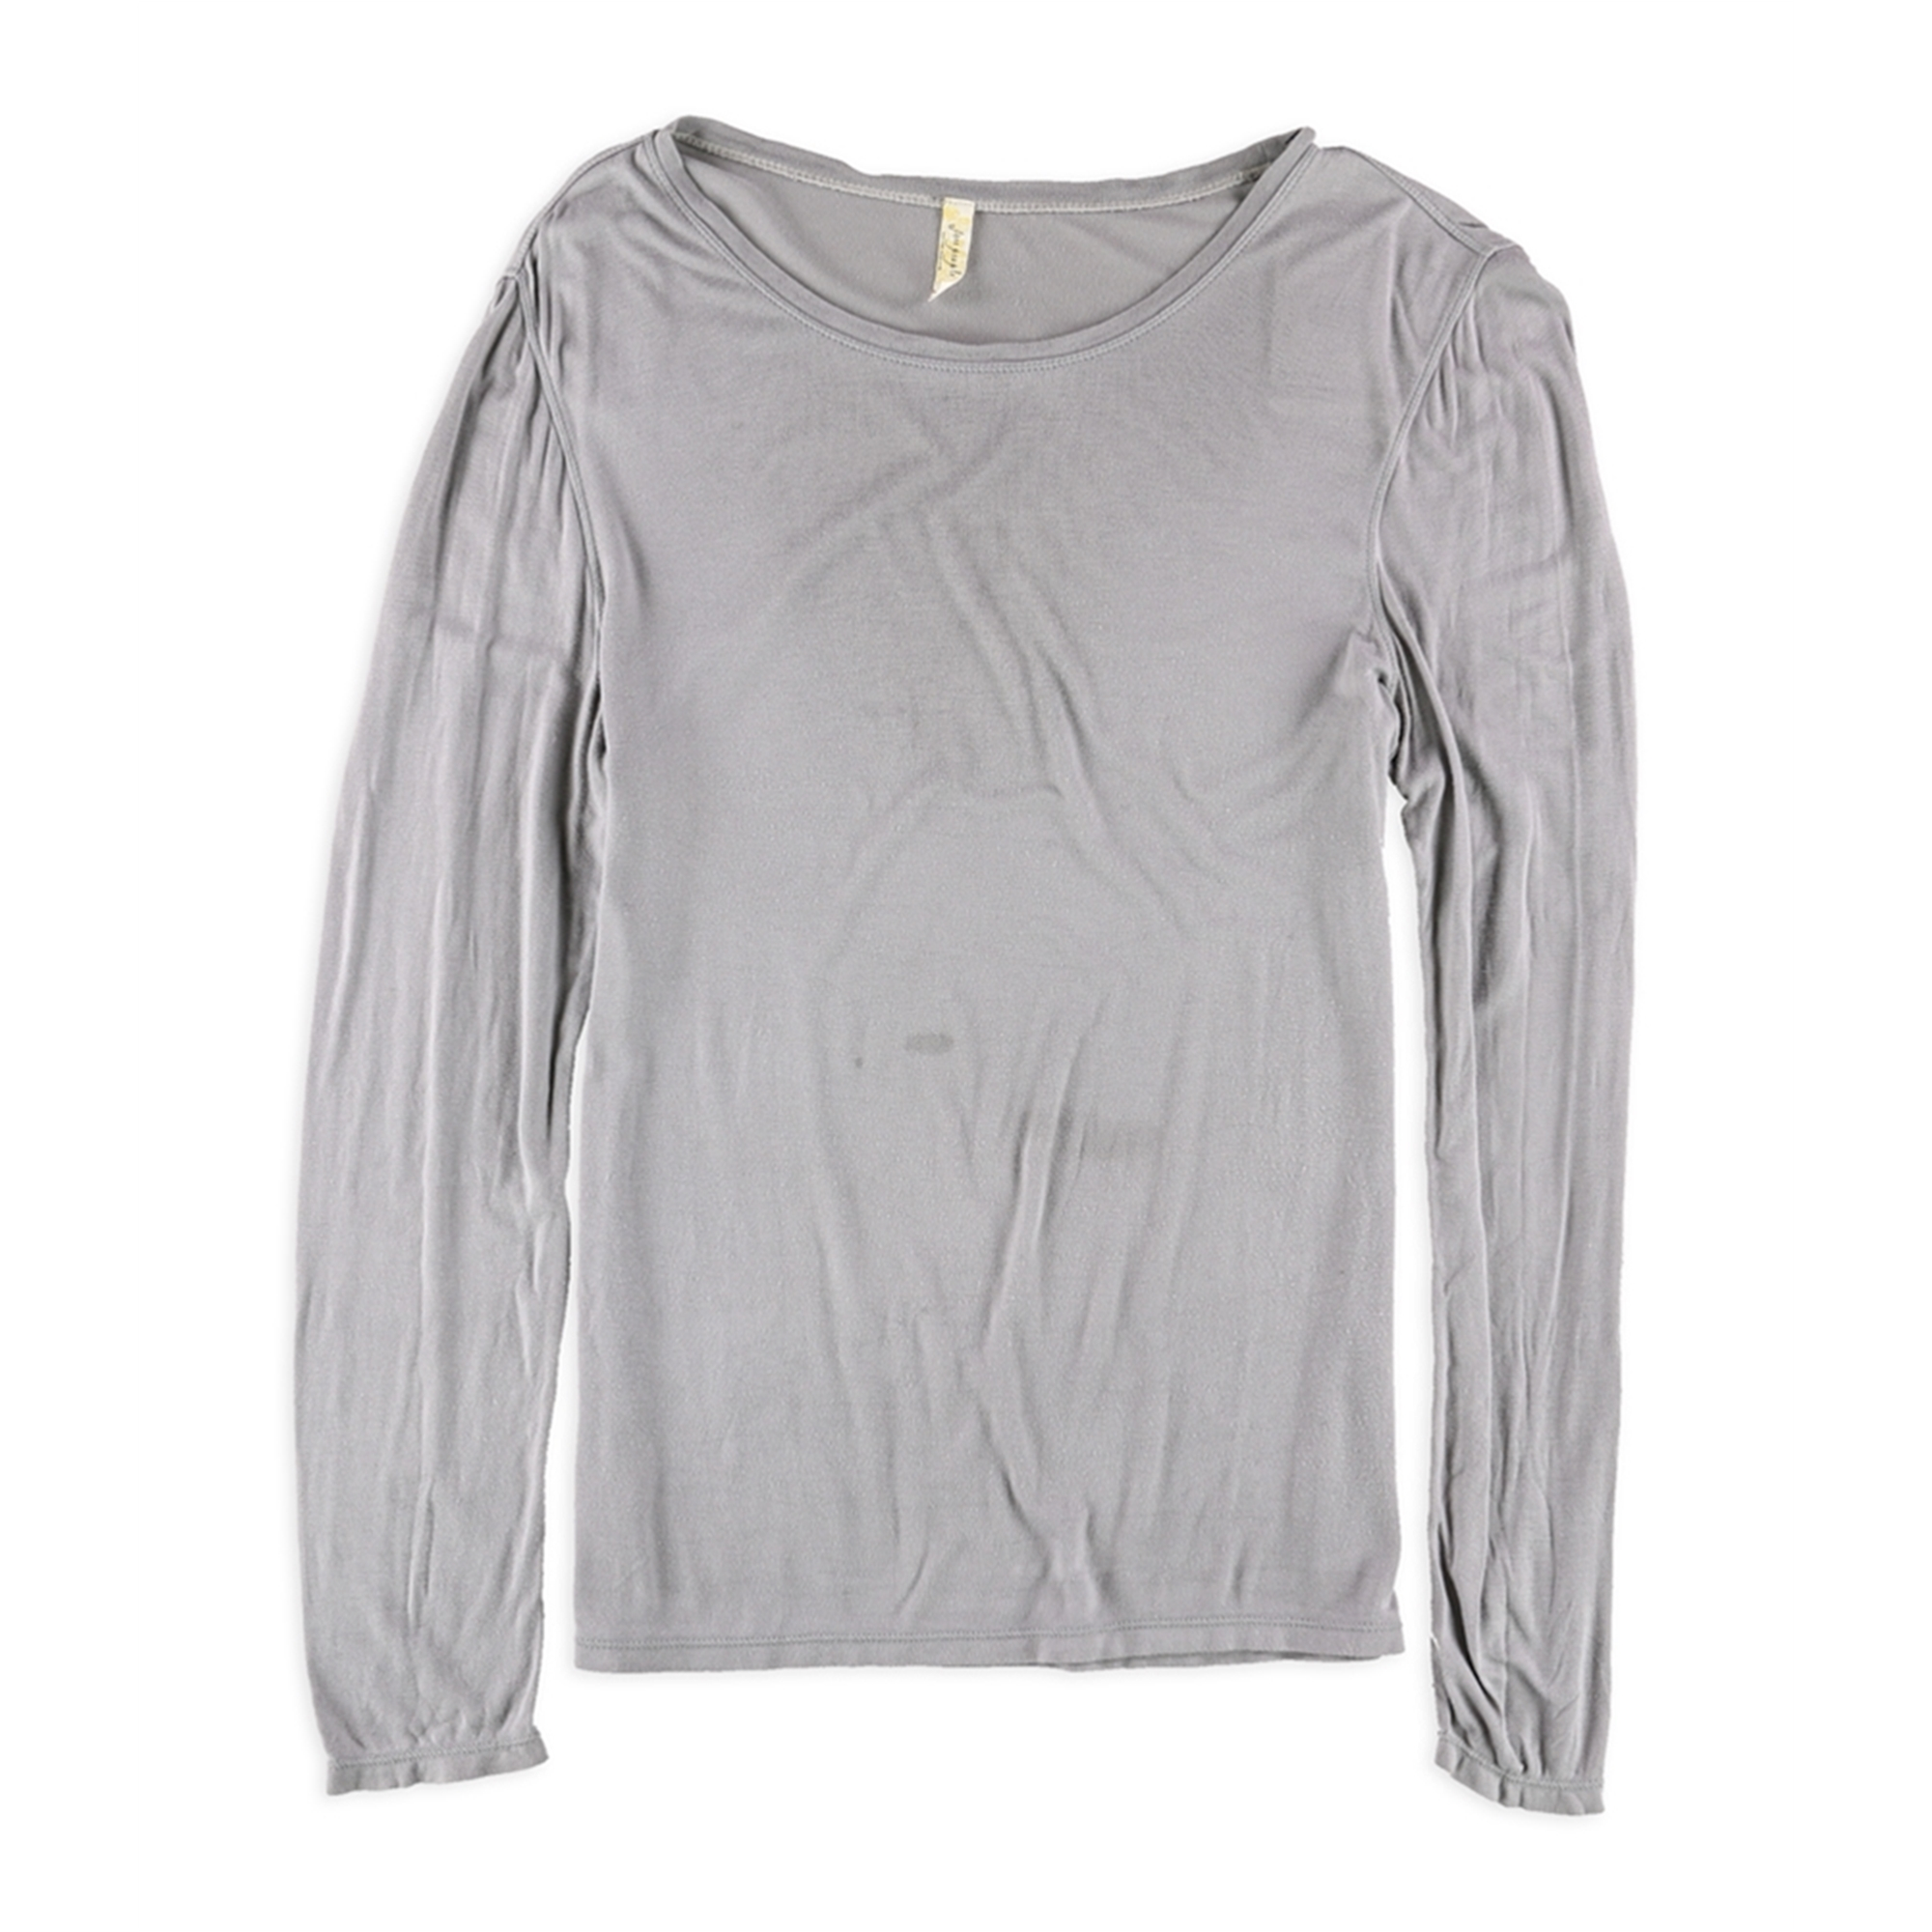 Free People Womens Solid Basic T-Shirt